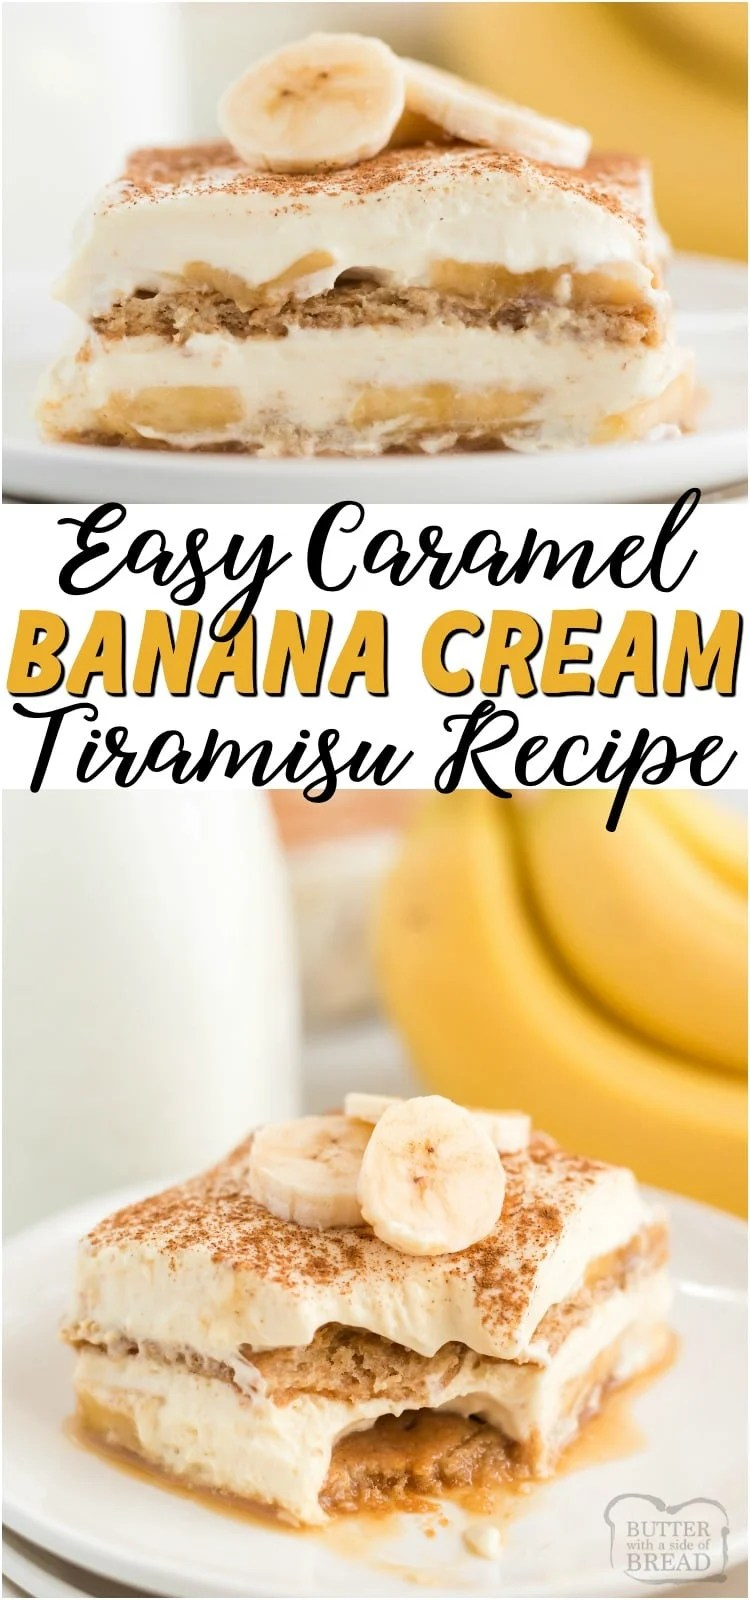 Easy recipe for Caramel Banana Cream Tiramisu that uses graham crackers and a pudding-caramel mixture in layers. Comes together so fast & is delicious! #banana #caramel #tiramisu #layered #dessert #icebox #recipe from BUTTER WITH A SIDE OF BREAD